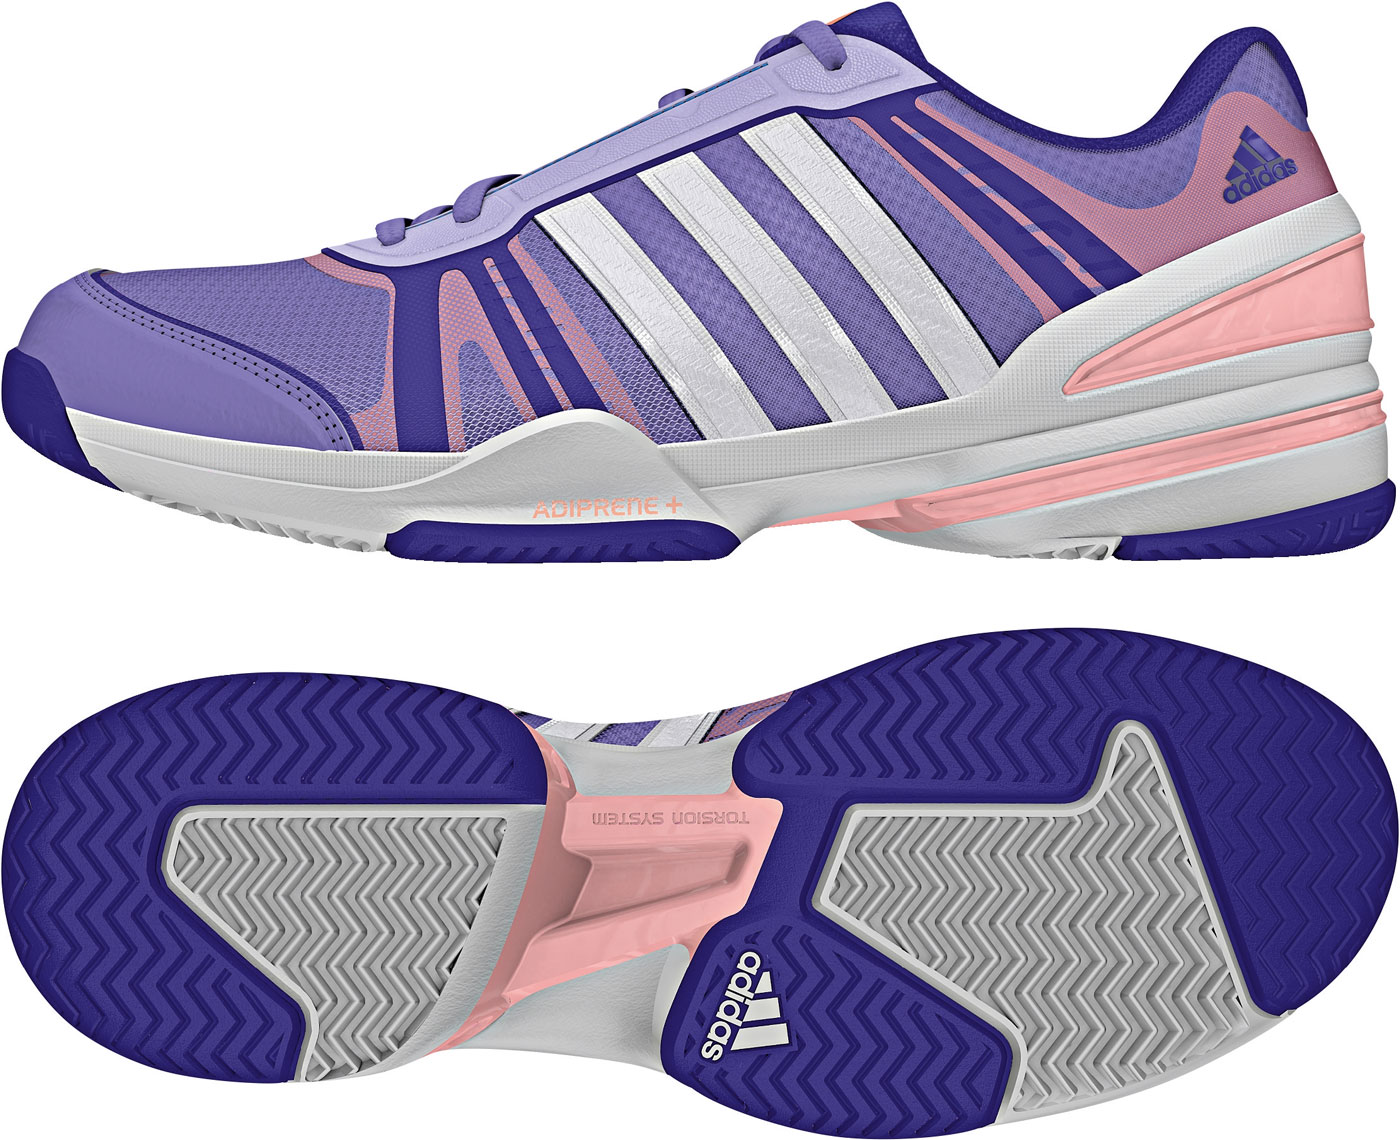 Damen Tennisschuh ClimaCool Rally Comp all court. adidas